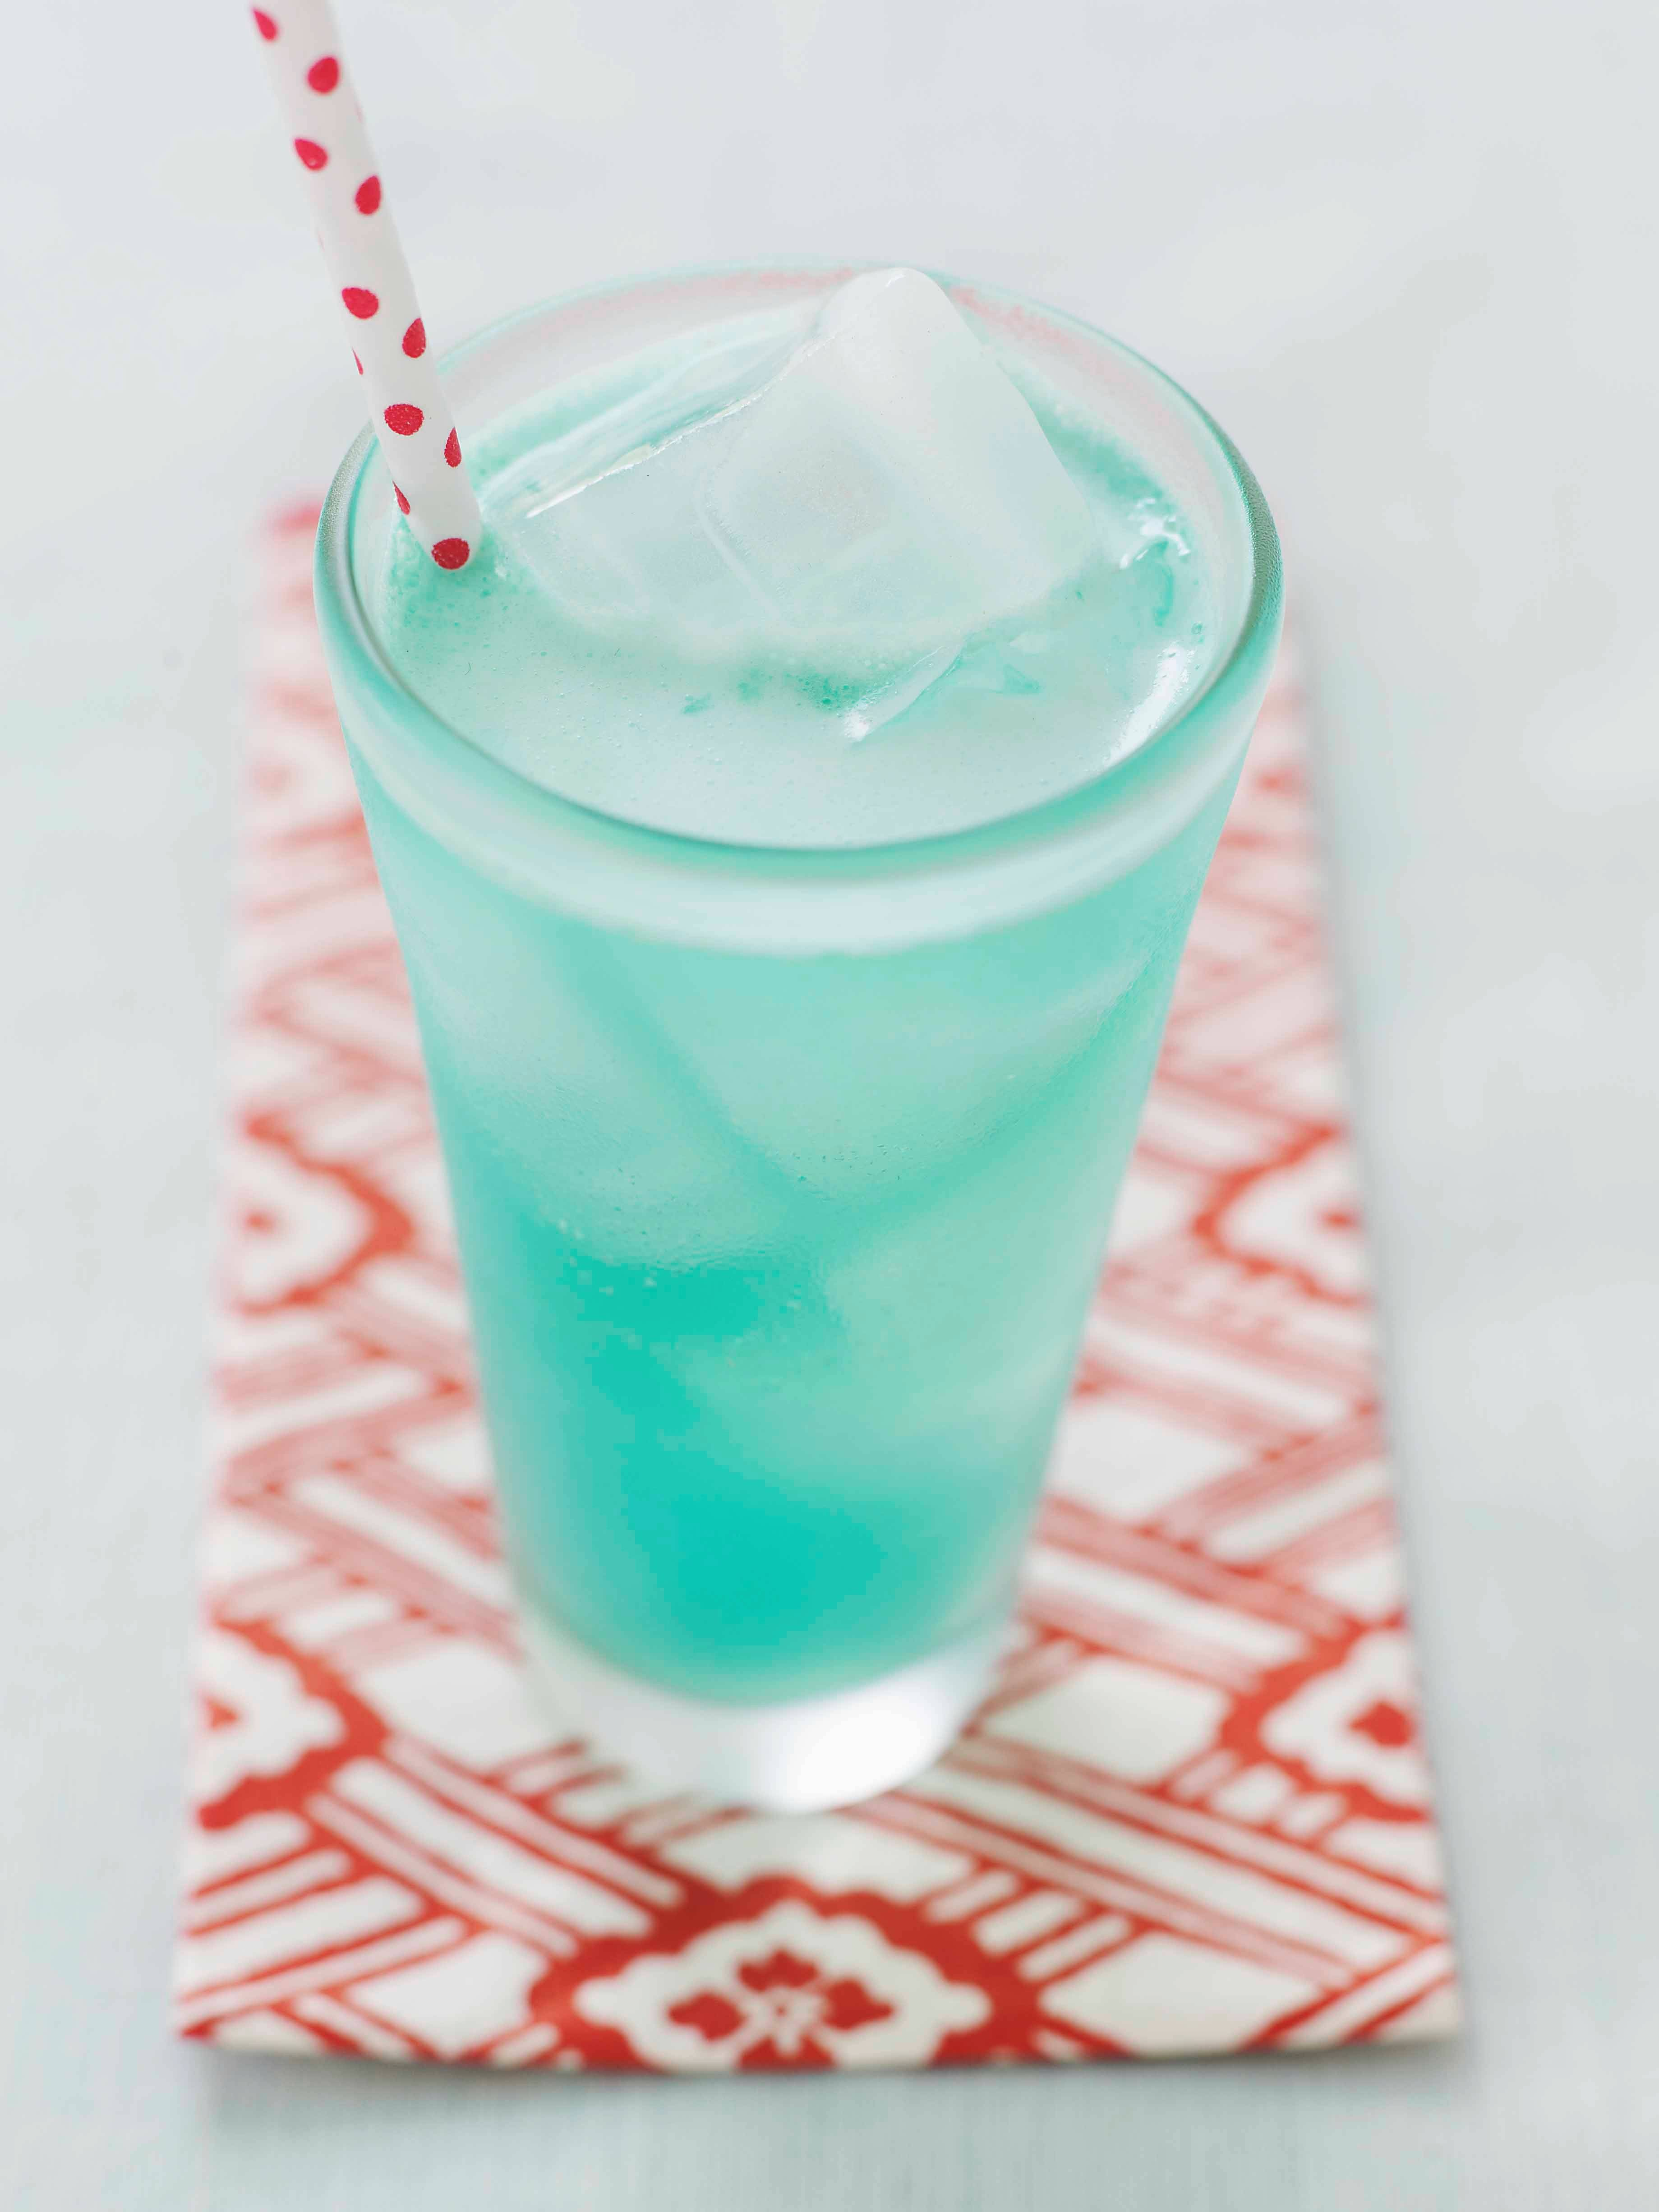 Jamaican Me Blue will lift your spirits during this cold winter.